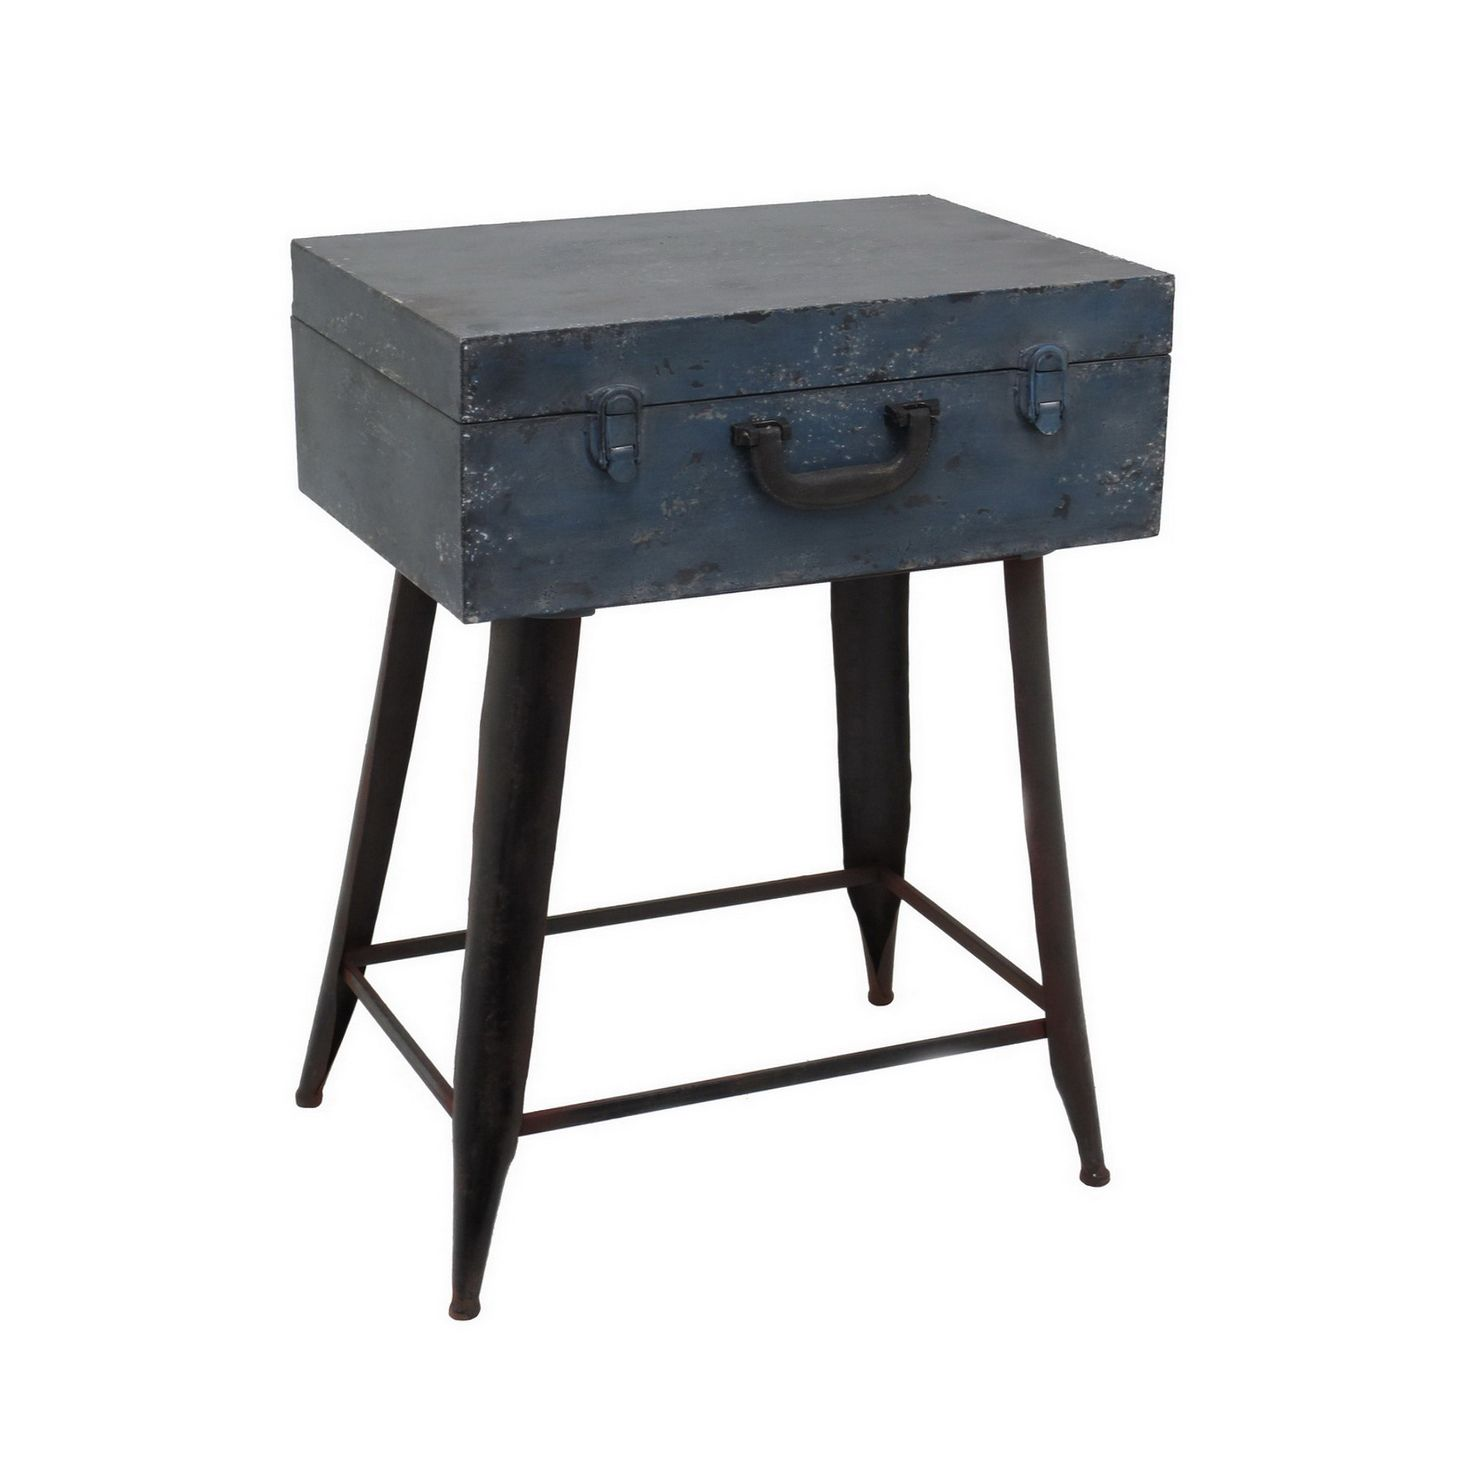 excursion accent table dotandbo country living decor tall piece outdoor dining set hall chests and cabinets drum chair west elm mid century rug target drawer dale lighting lamps